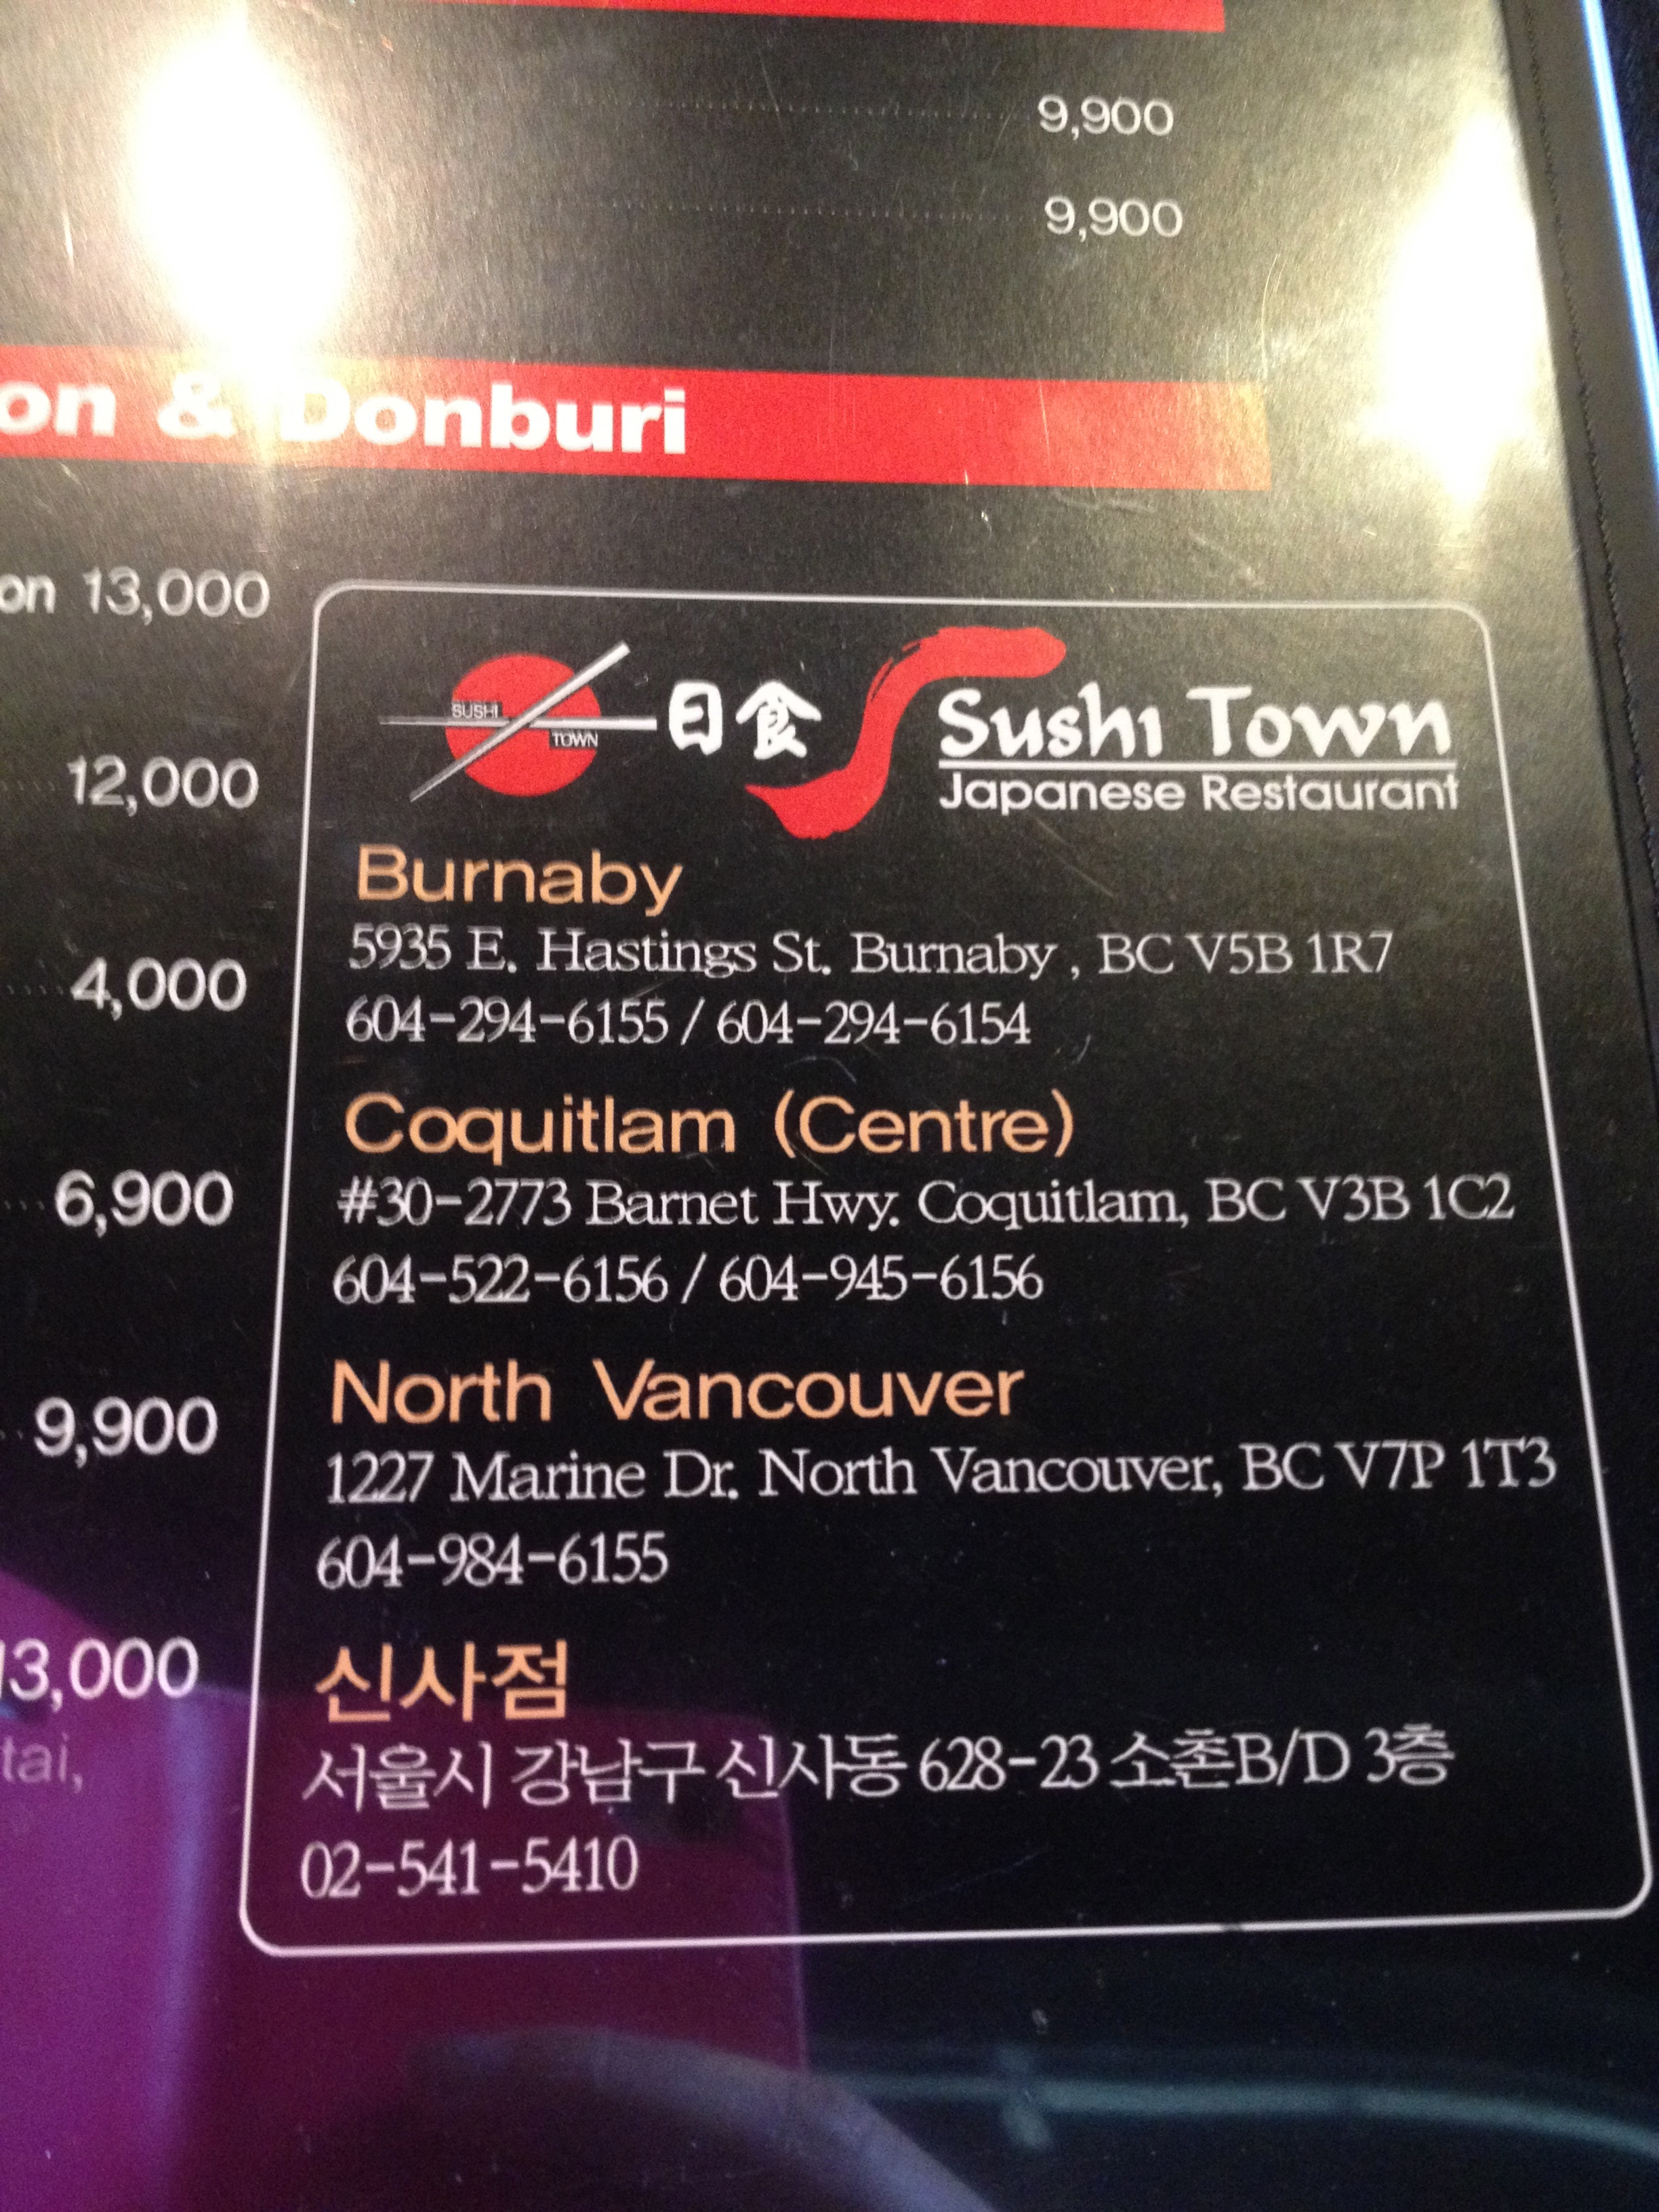 The fourth location of Sushi Town...this one bring in Shinsa/Gangnam Area in Seoul! Yay! The other 3 are in my home city - I don't think the North Vancouver location even existed while I was still living there!